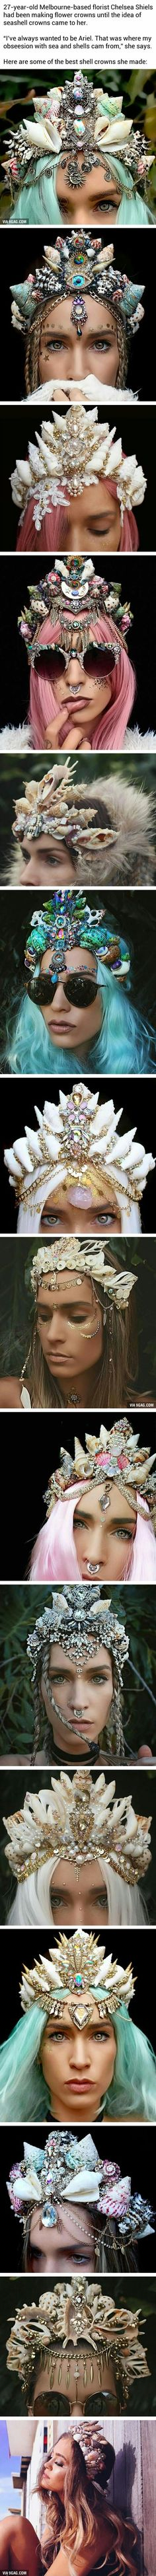 Seashell crowns